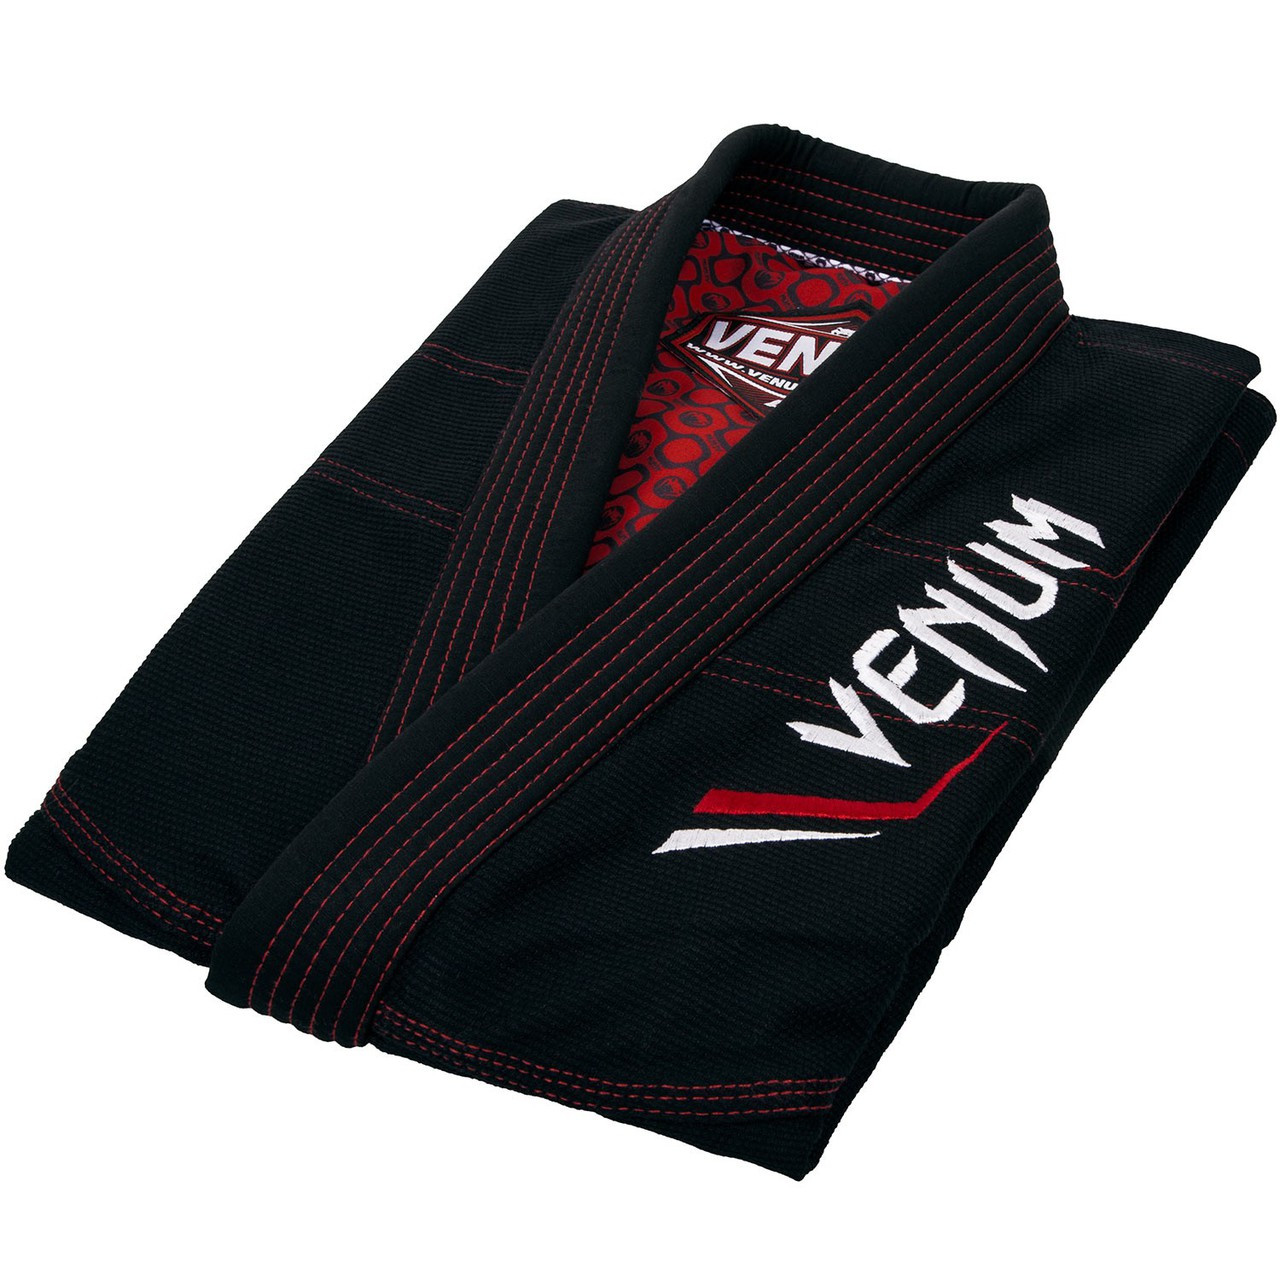 Folded gi Venum Elite Light BJJ GI in Black is now available at www.thejiujitsushop.com  Enjoy Free Shipping from The Jiu Jitsu Shop today!